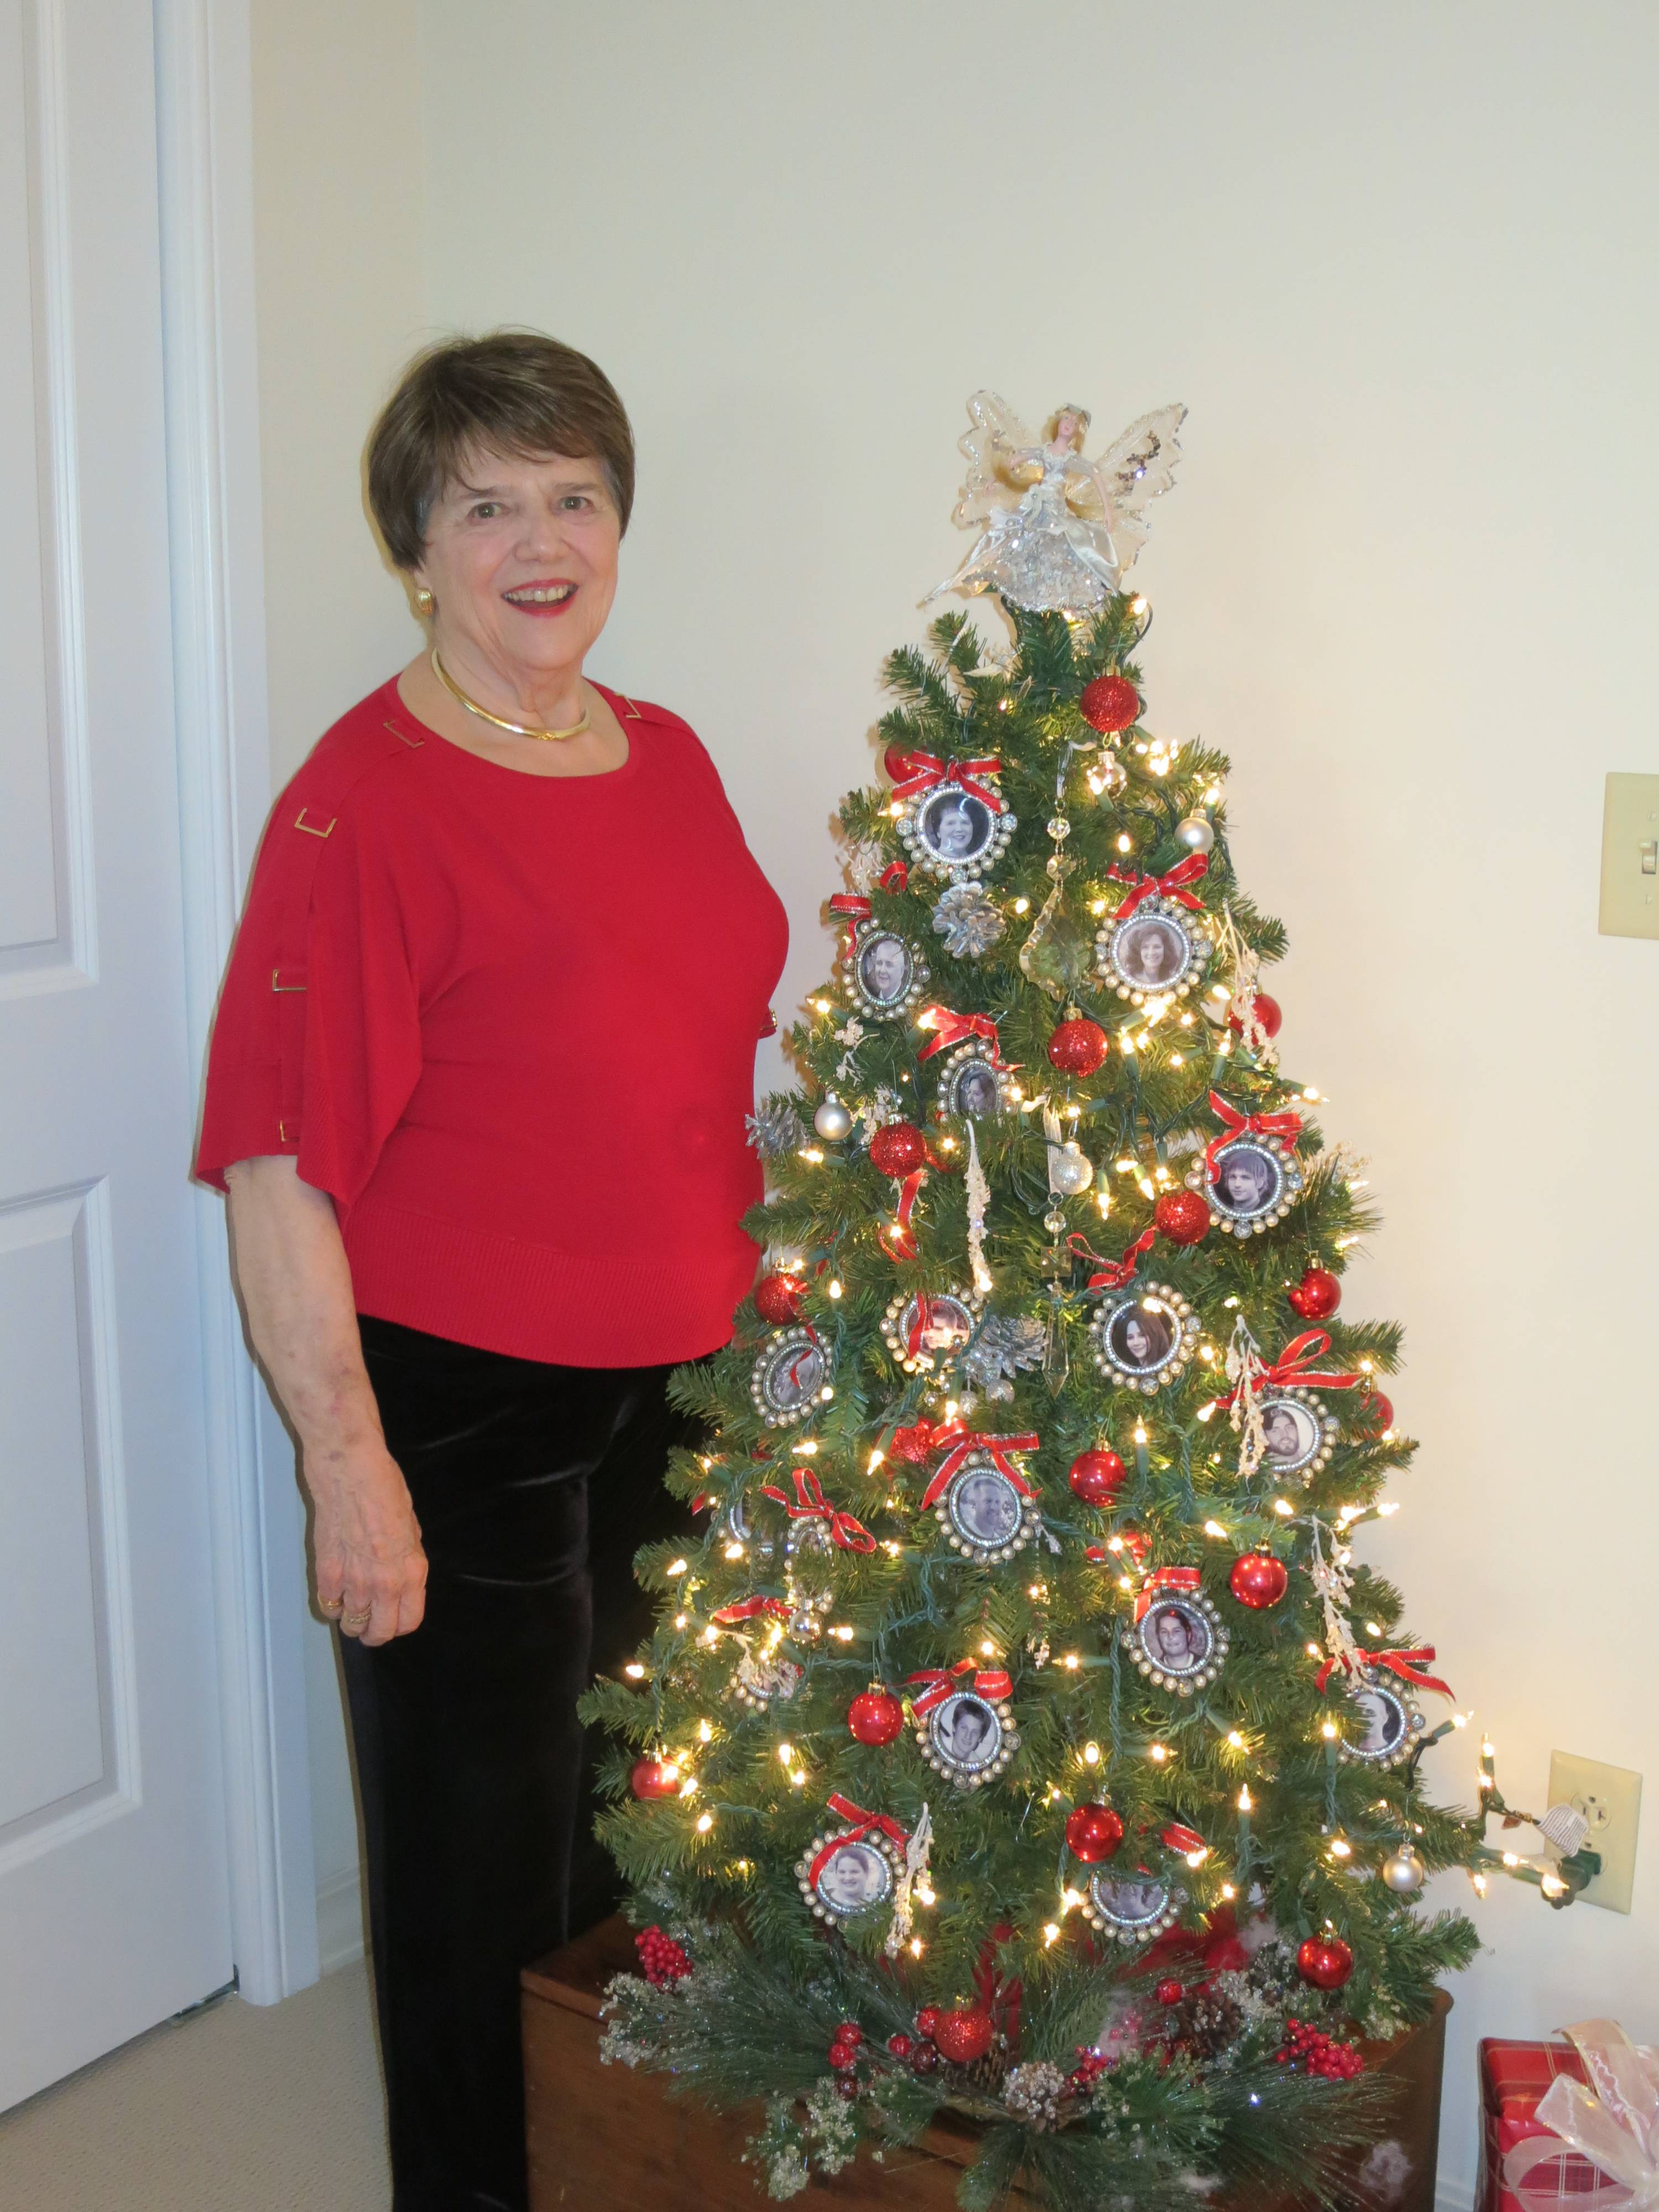 Sandy Villwock opened her home to prospective residents at GreenFields of Geneva's Holiday Parade of Homes.